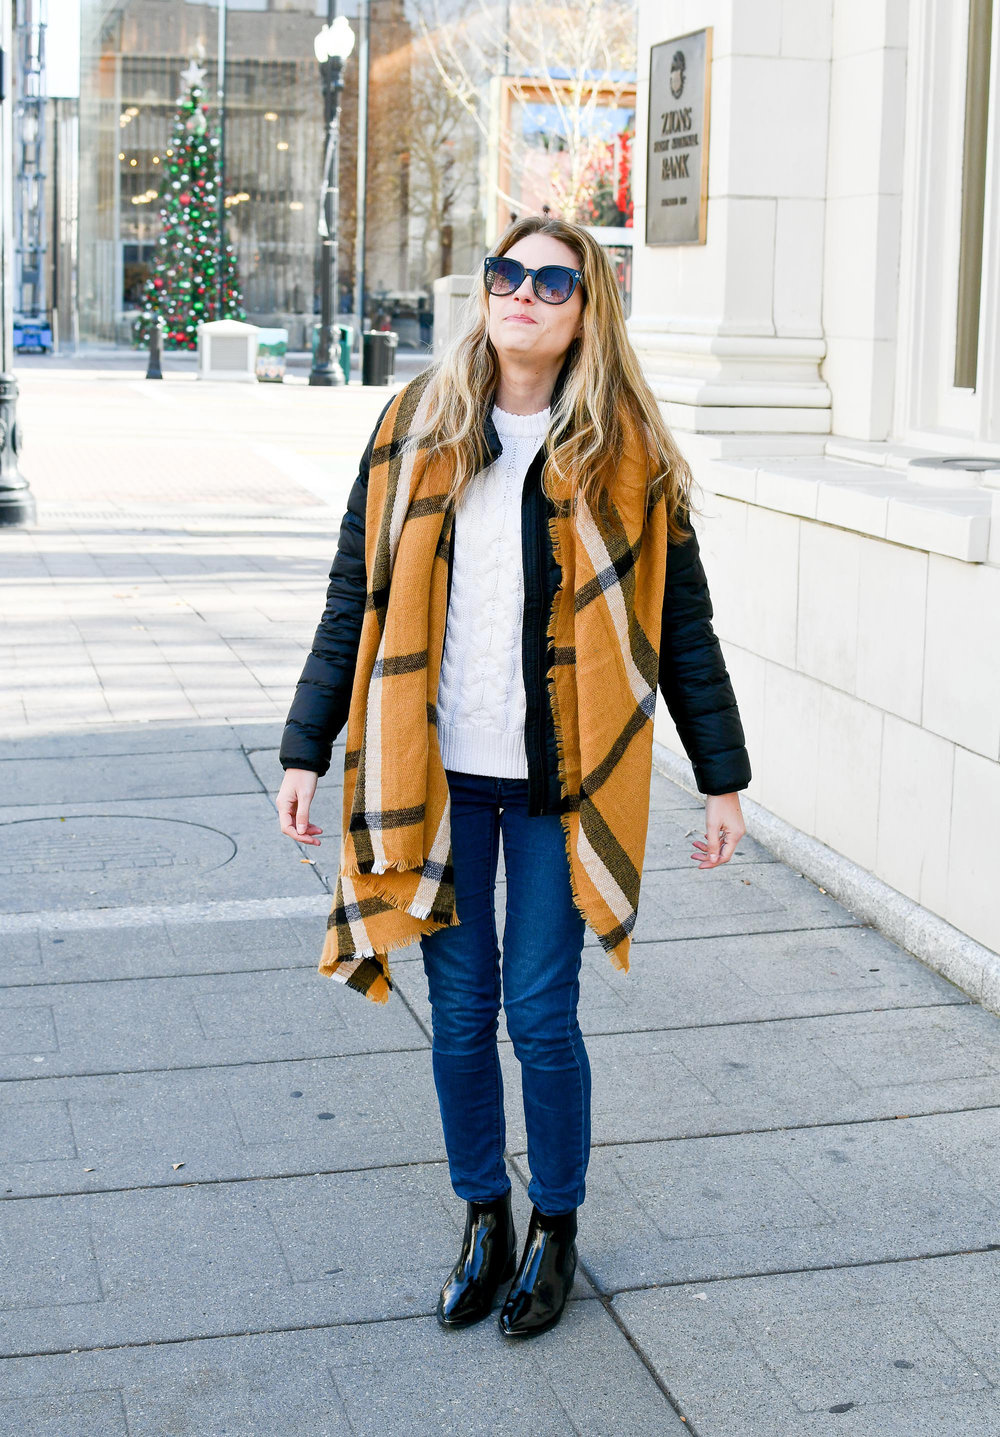 Blanket scarf outfit outtake — Cotton Cashmere Cat Hair